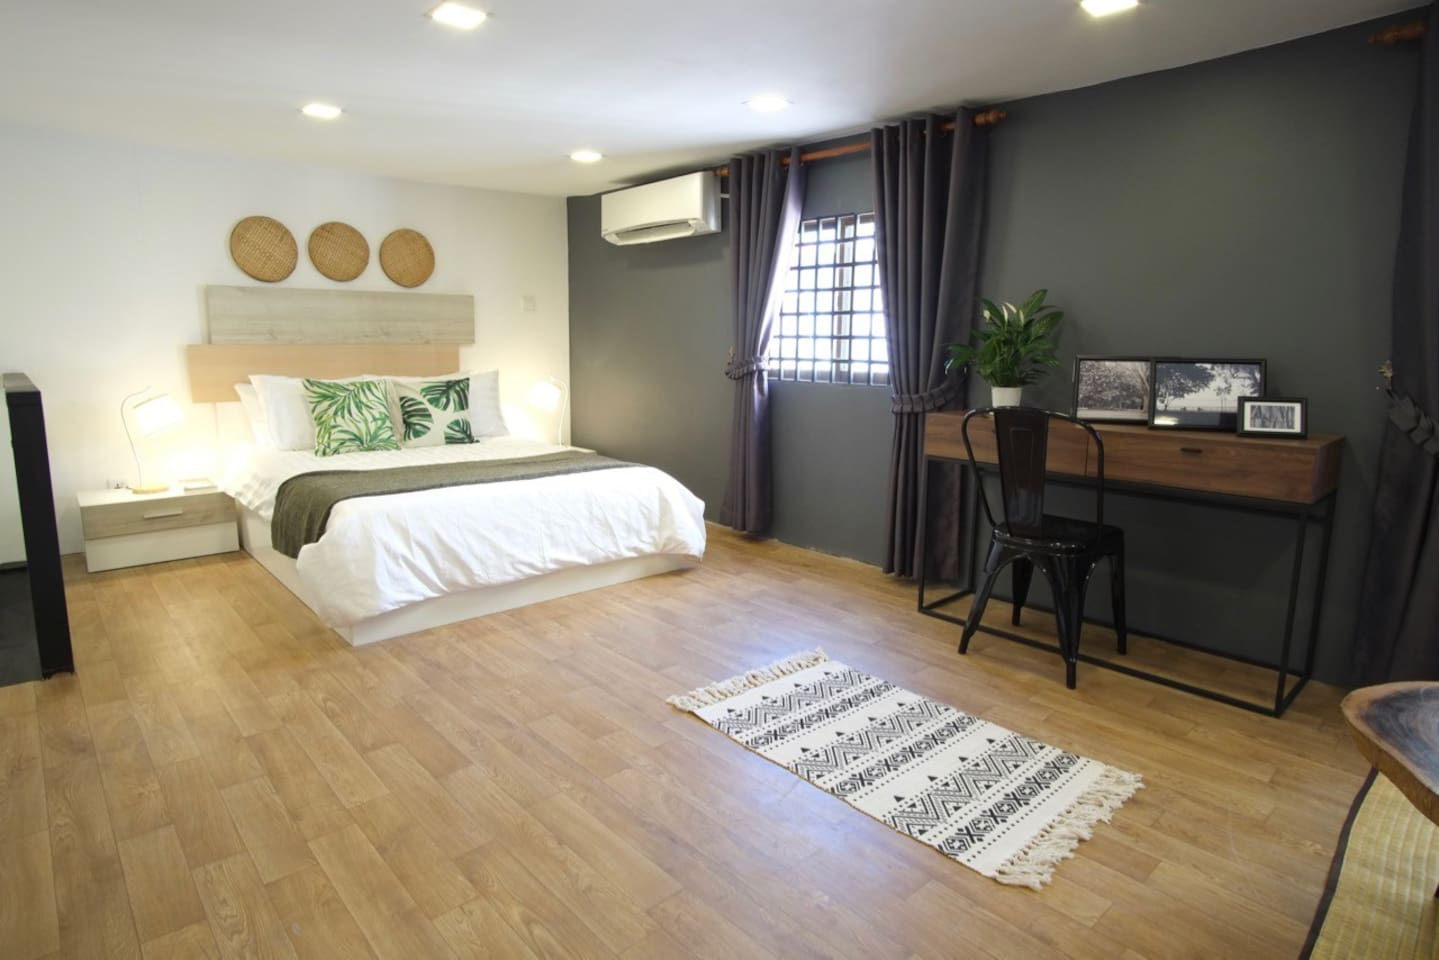 The studio apartment is located on the third floor of our shophouse.